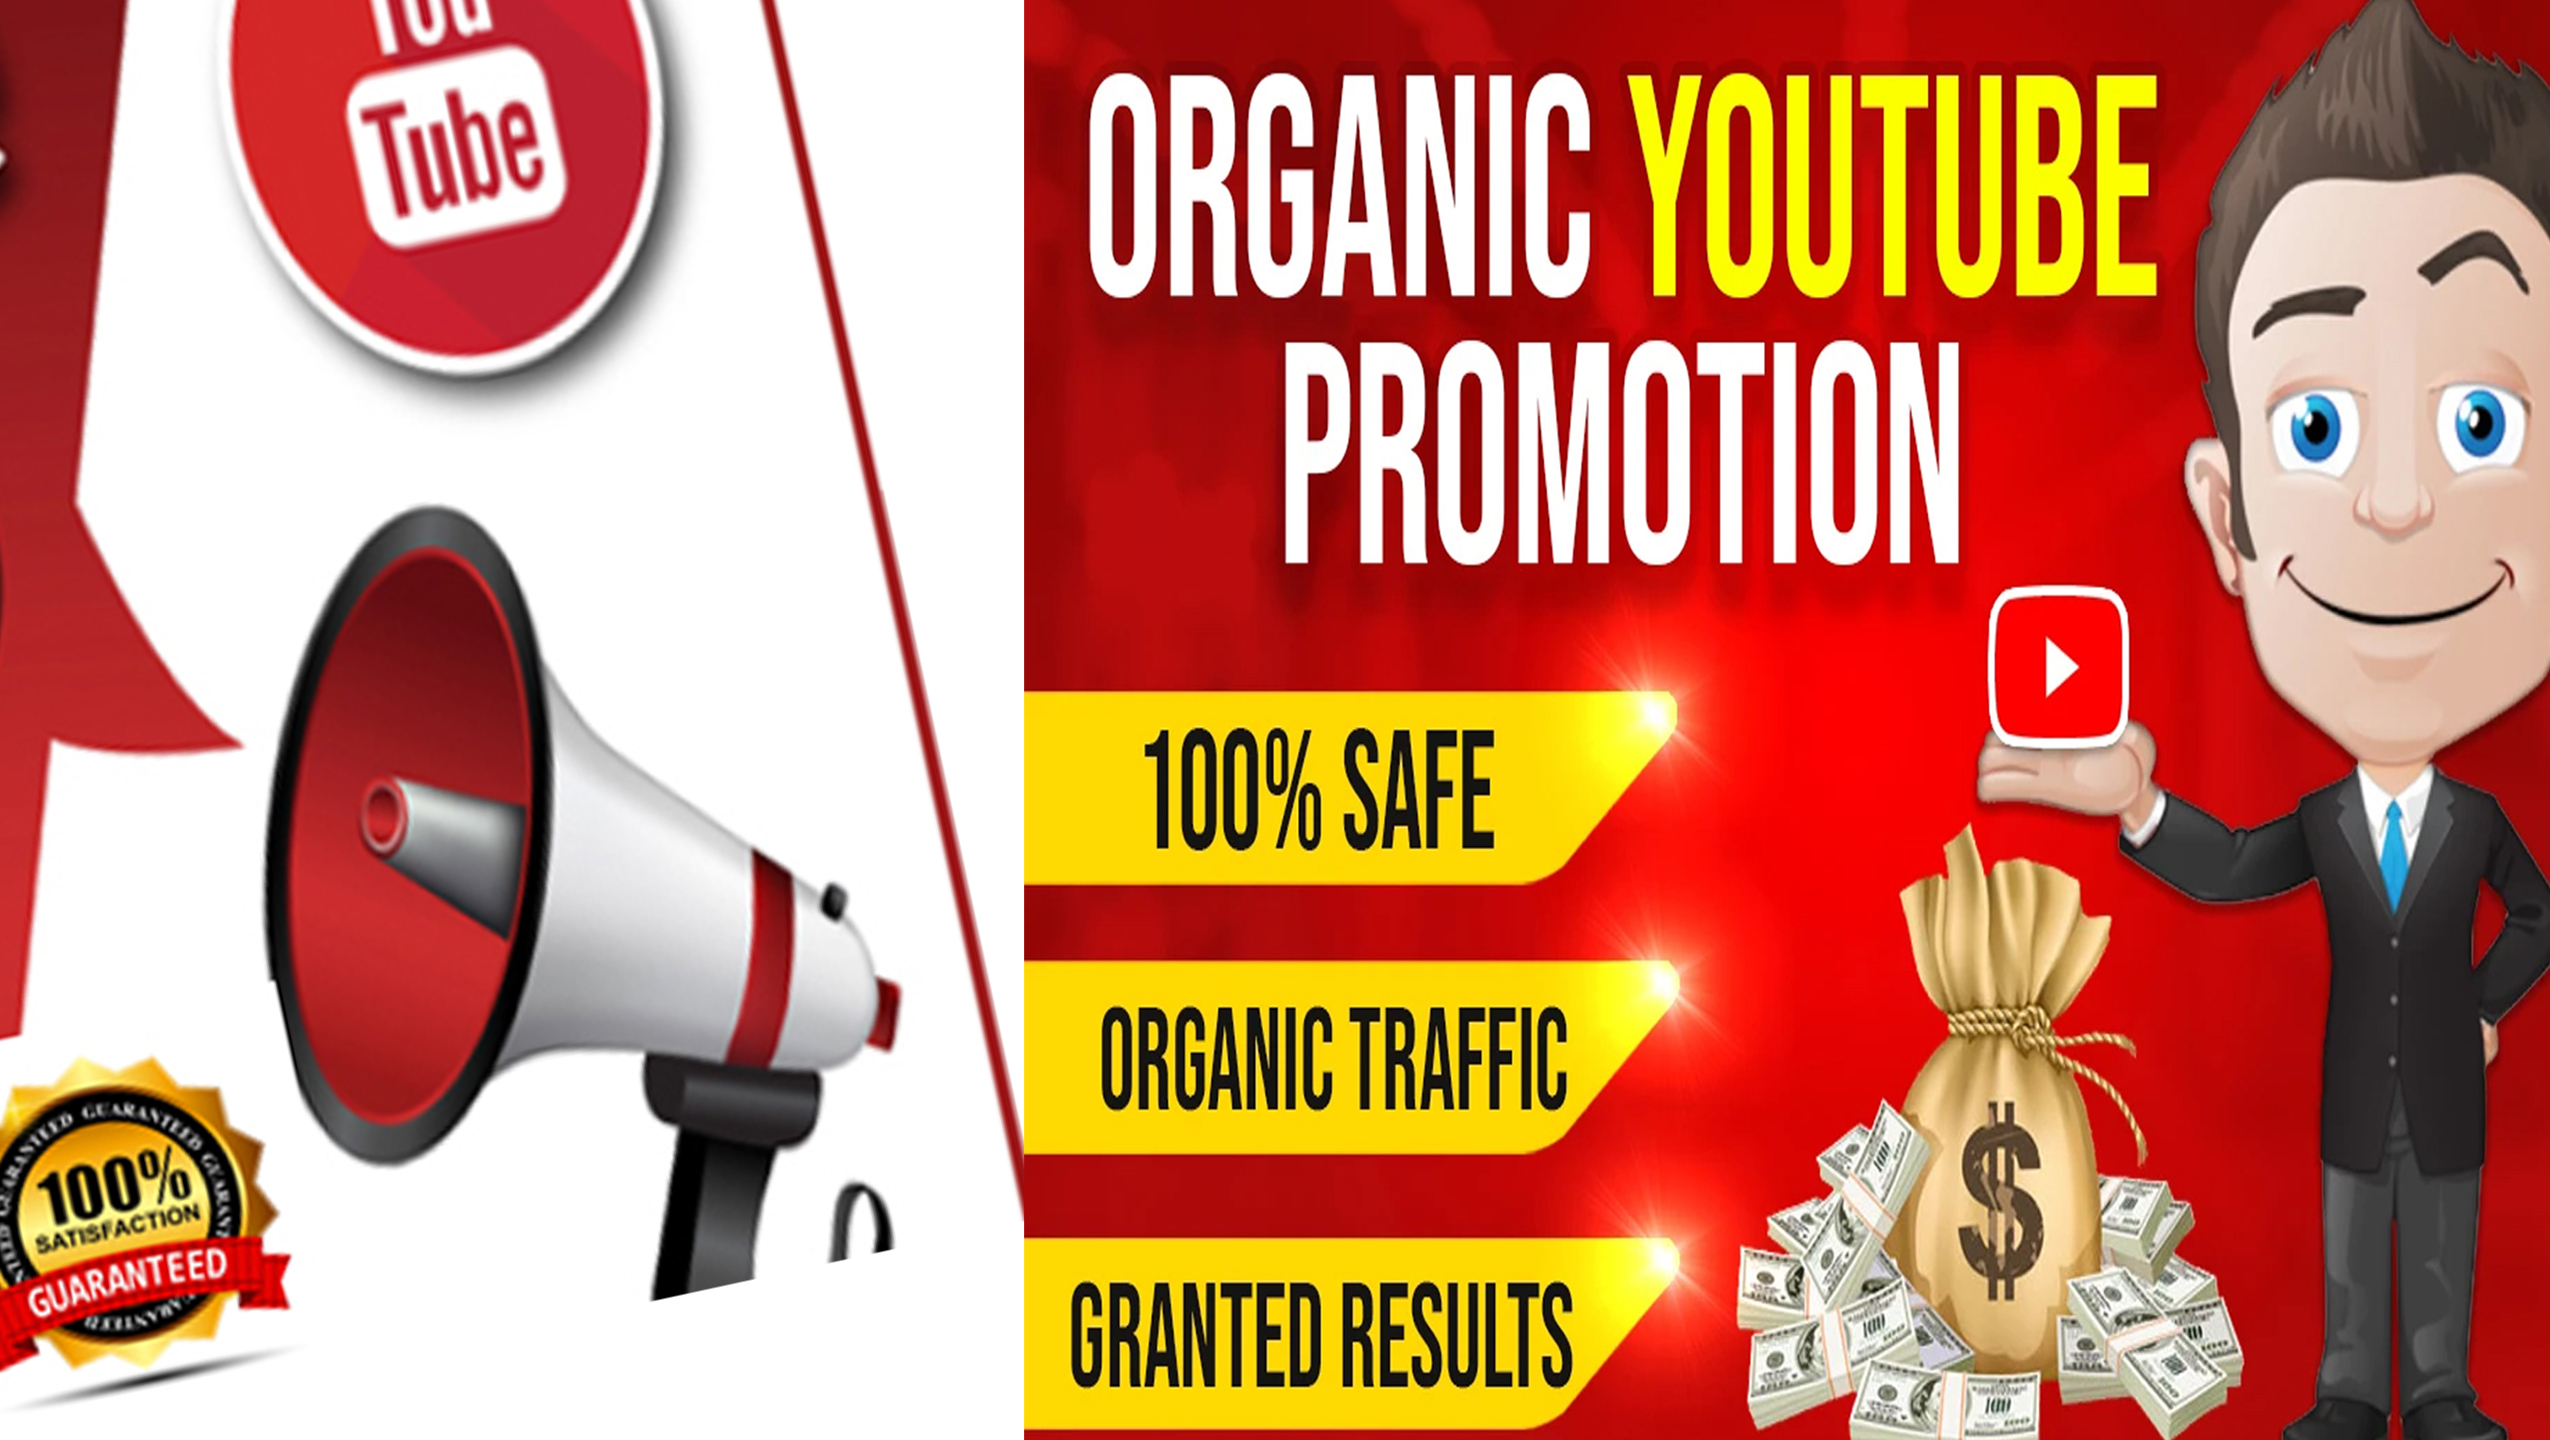 ALL IN ONE PACKAGE FOR YOUTUBE VIDEO AND CHANEL PROMOTION VIA REAL AUDIENCE